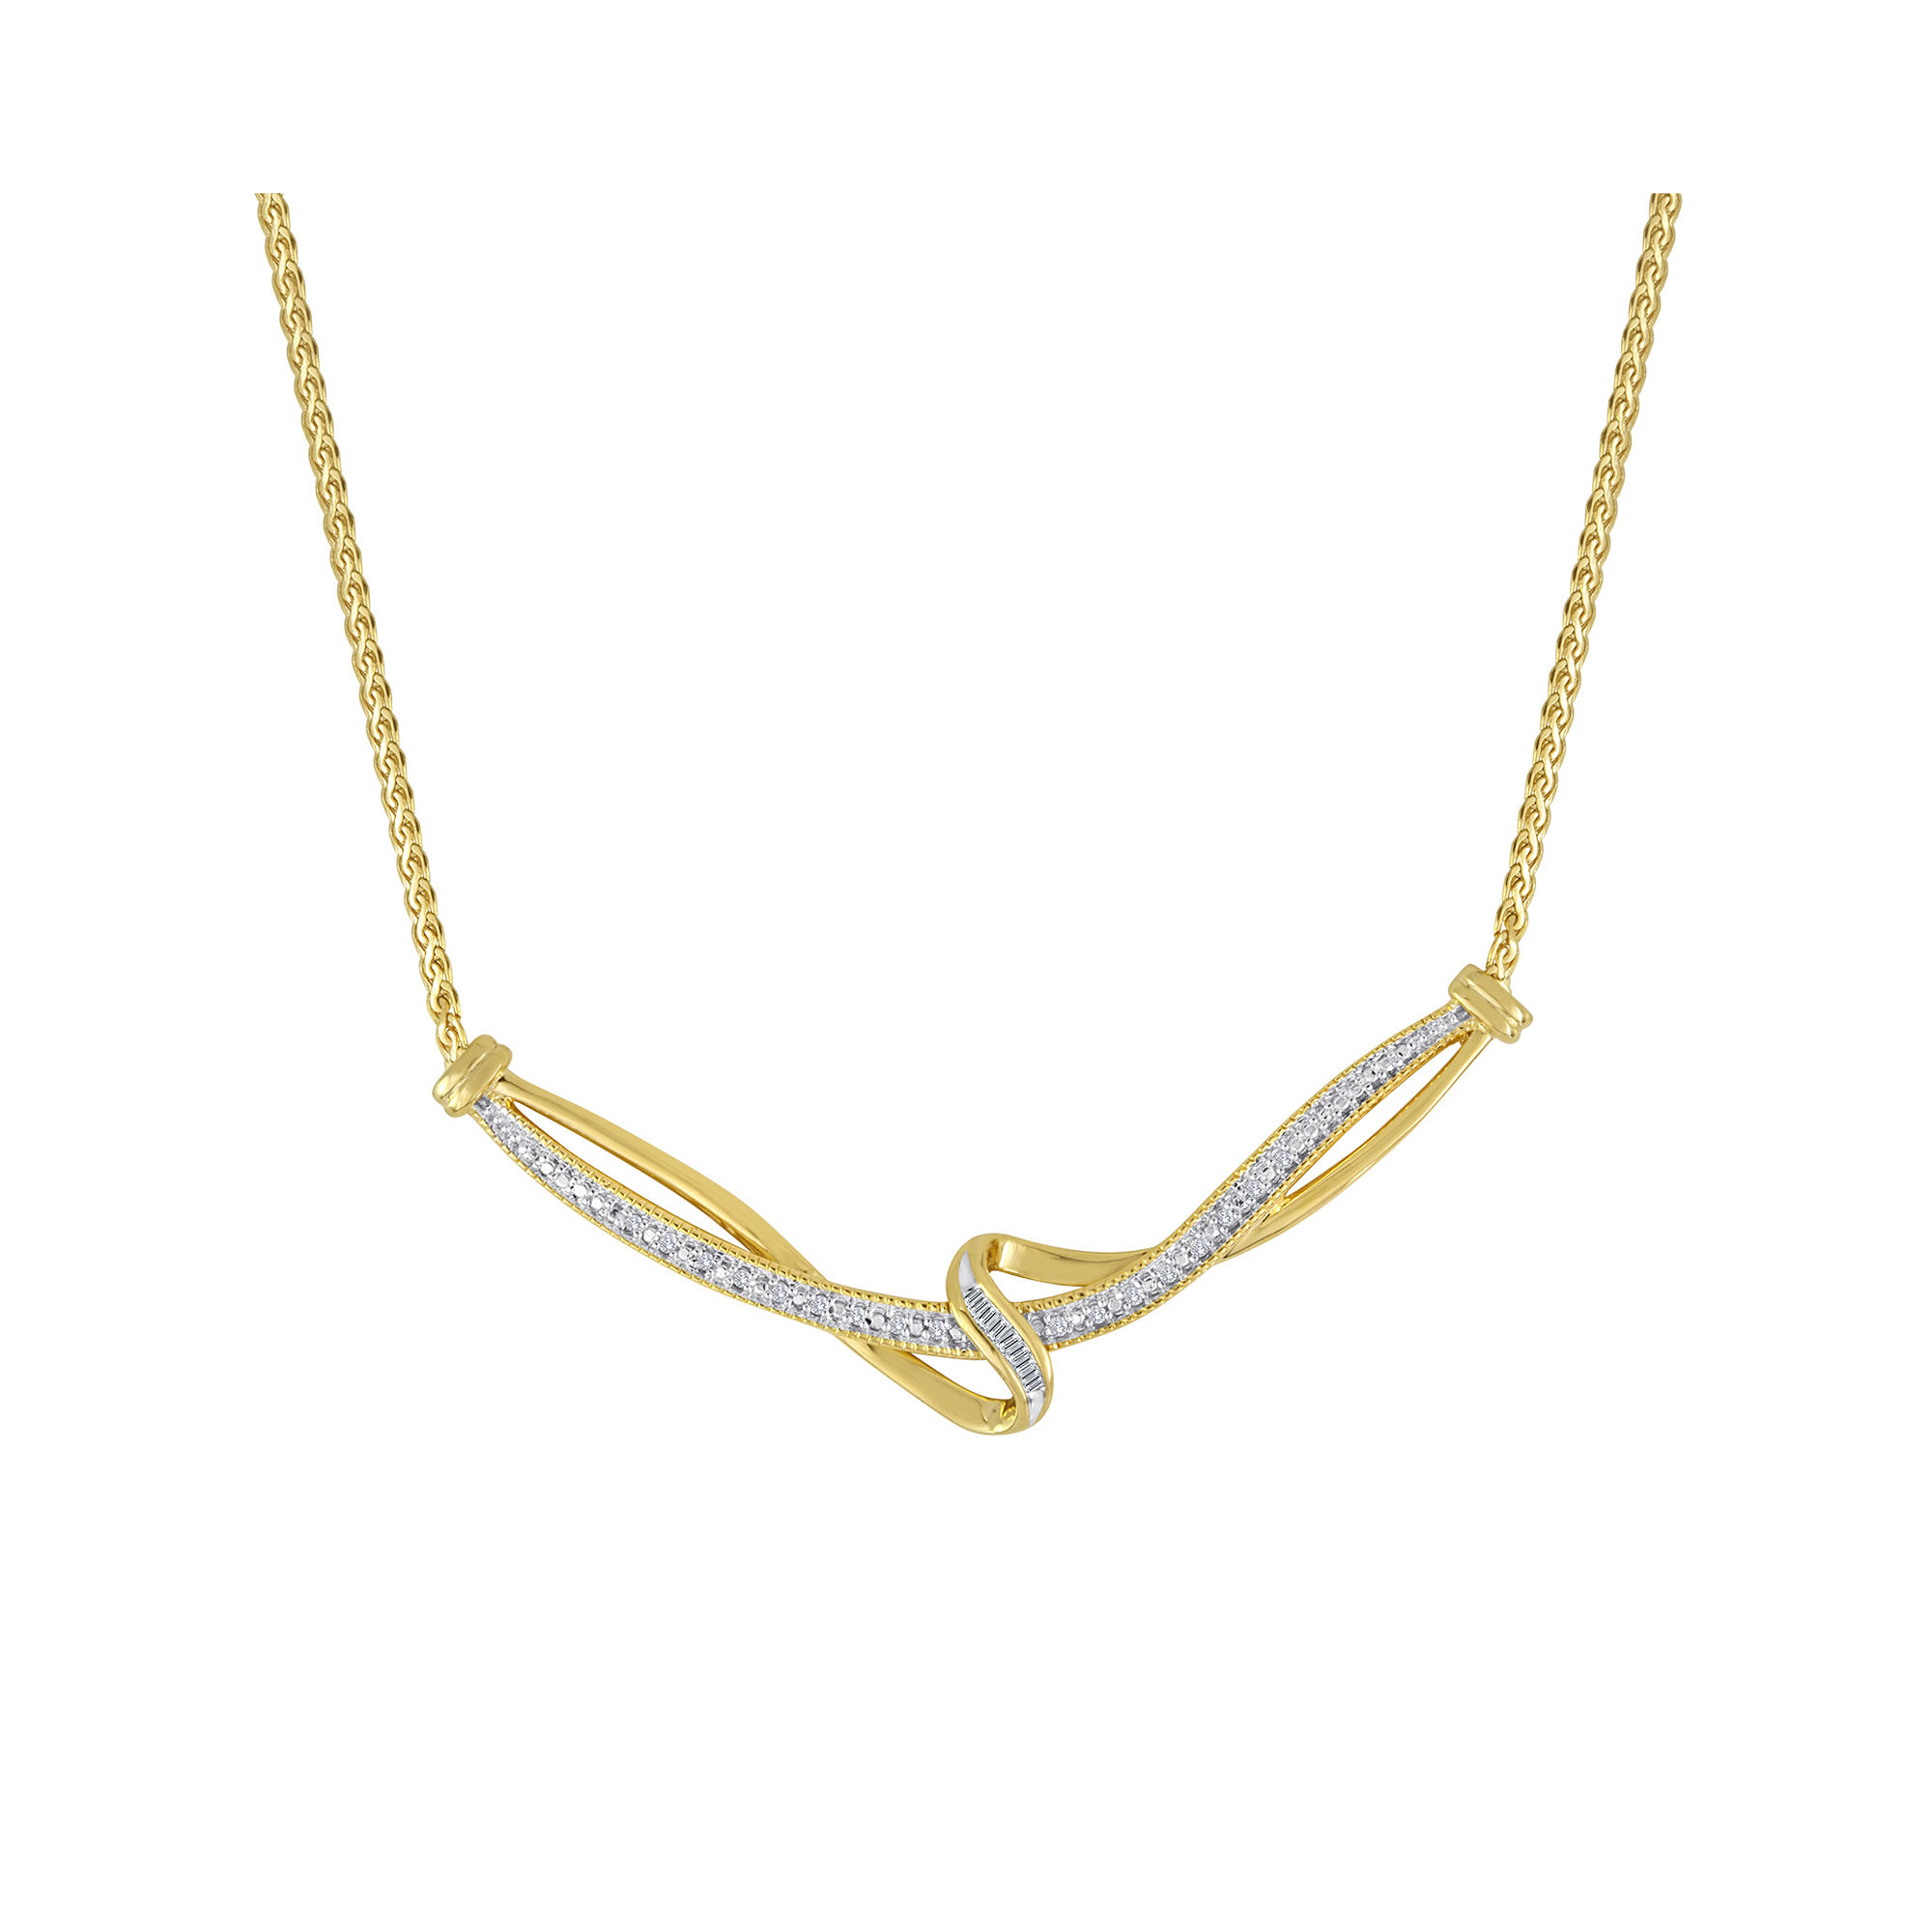 1/10 CT. T.W. Diamond 14K Yellow Gold Over Sterling Vintage Twist Necklace